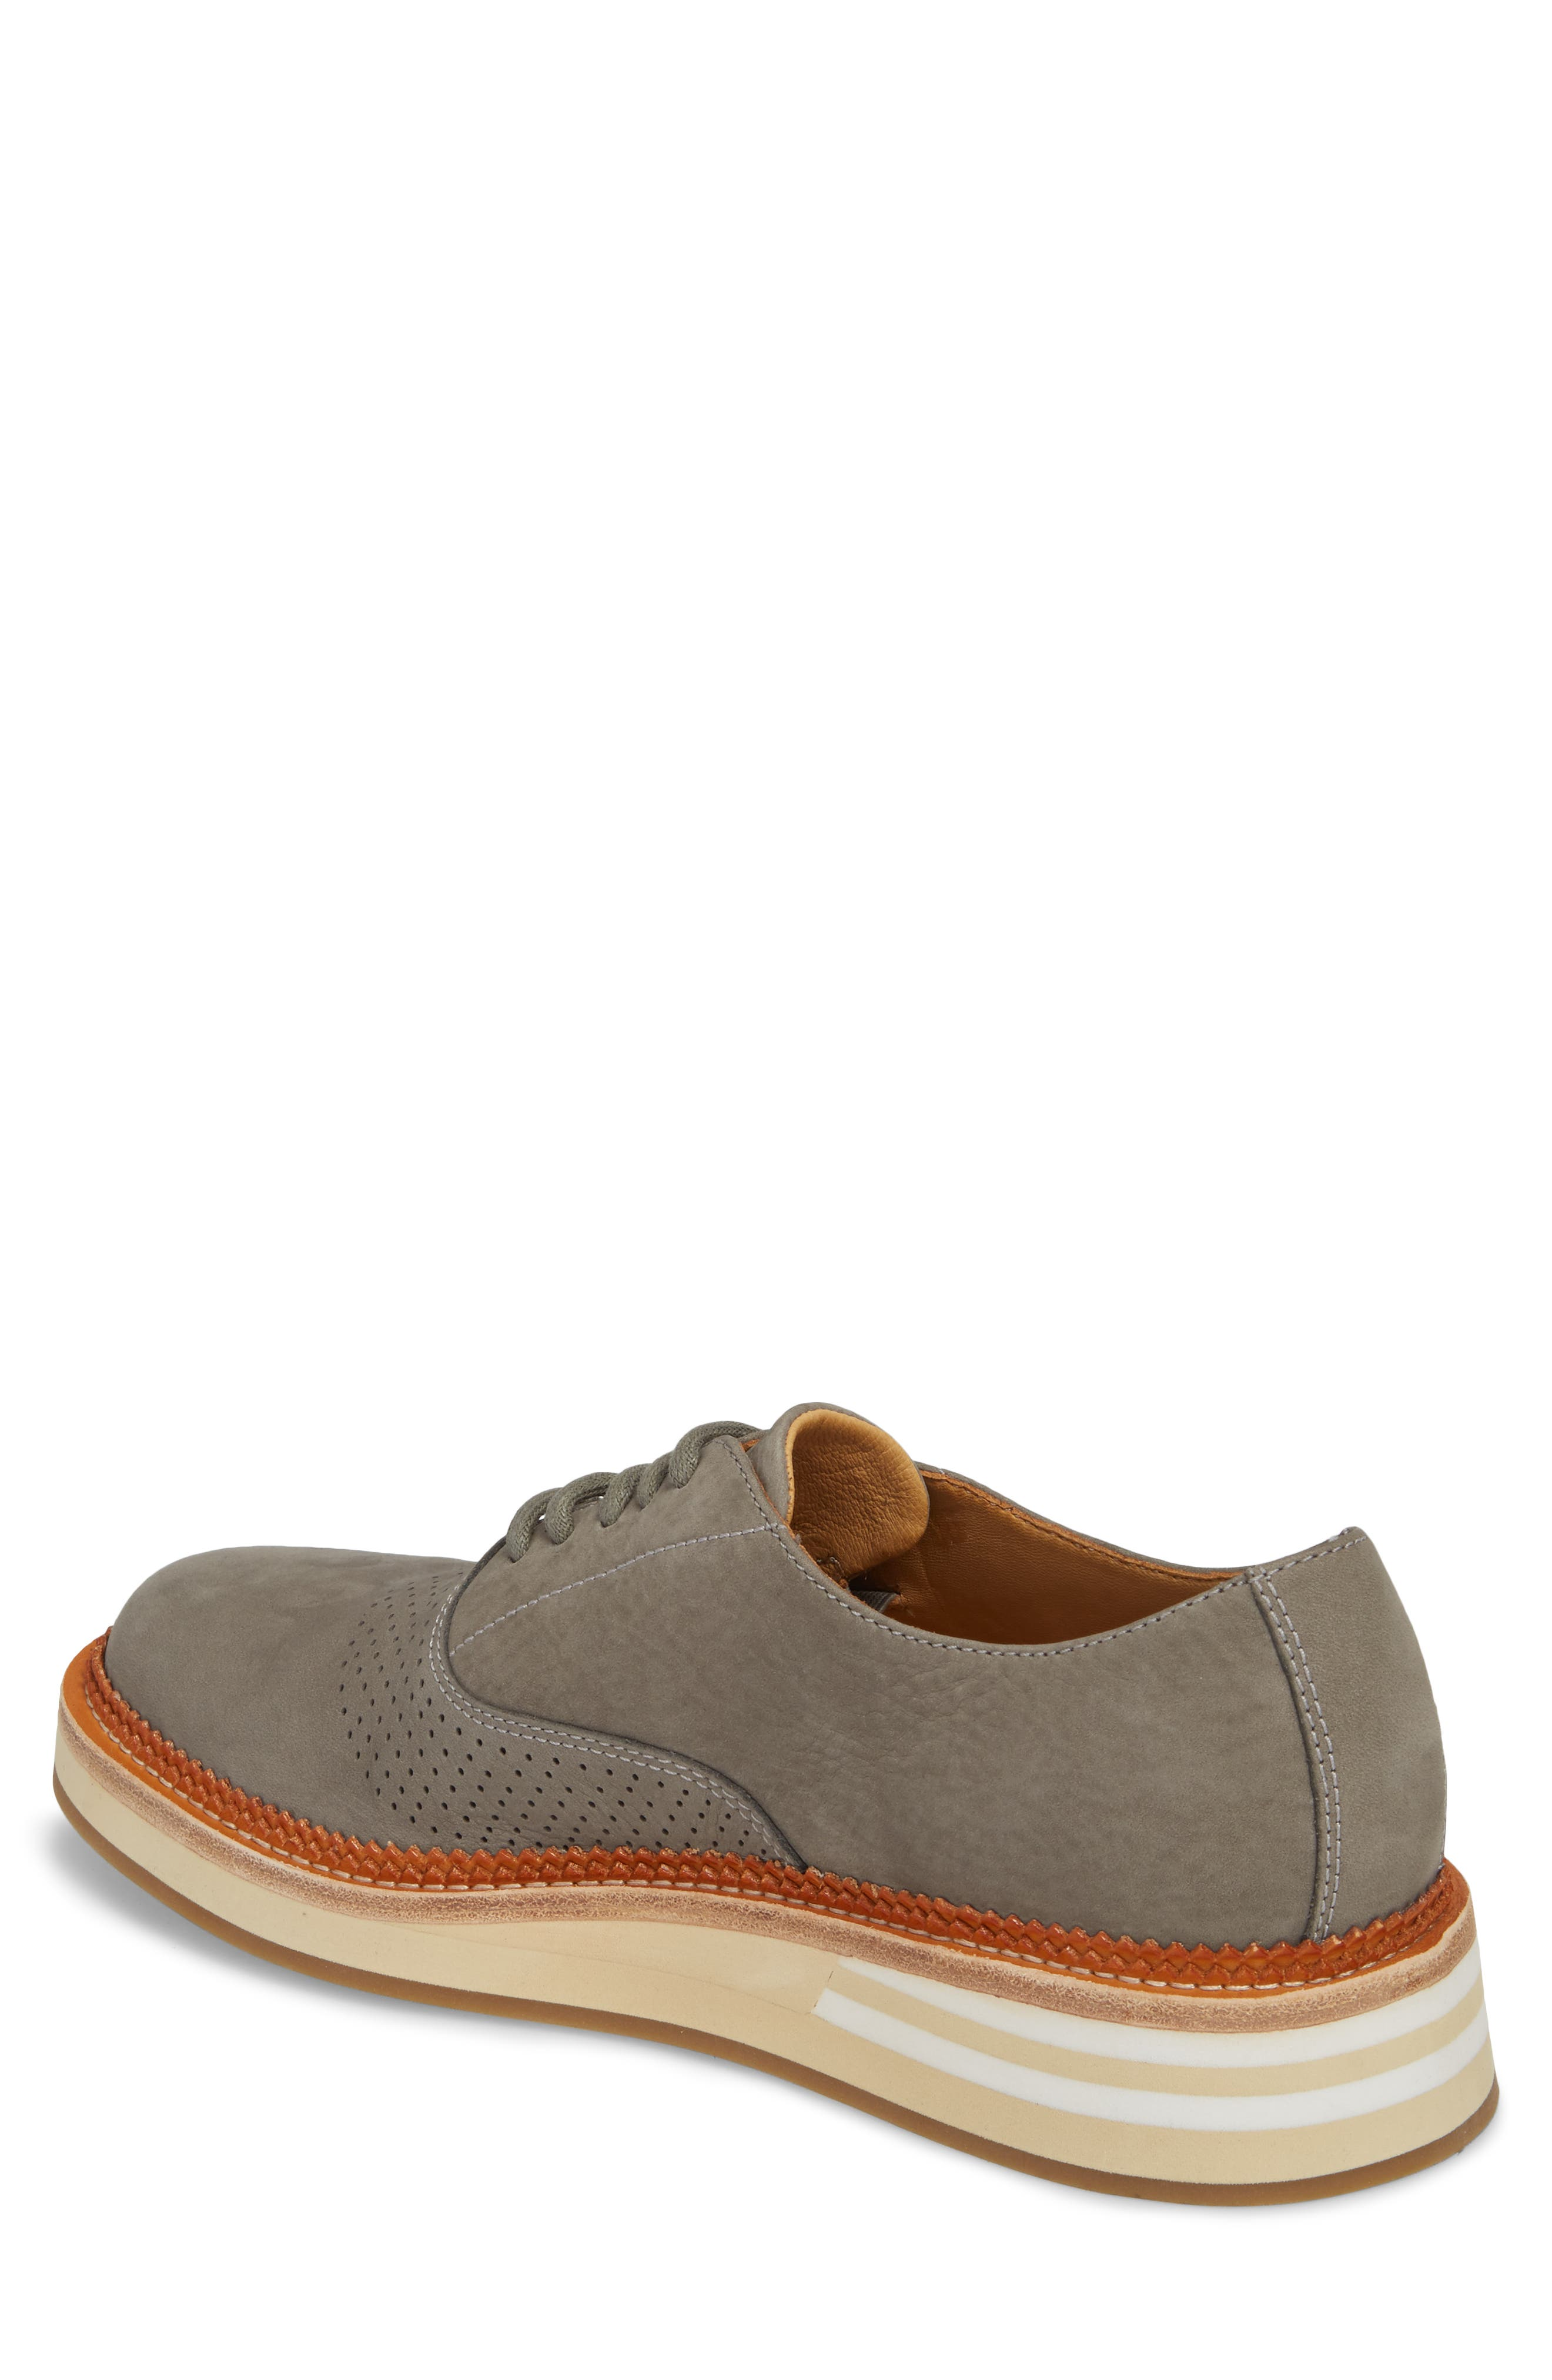 SPERRY, Cloud Perforated Oxford, Alternate thumbnail 2, color, GREY